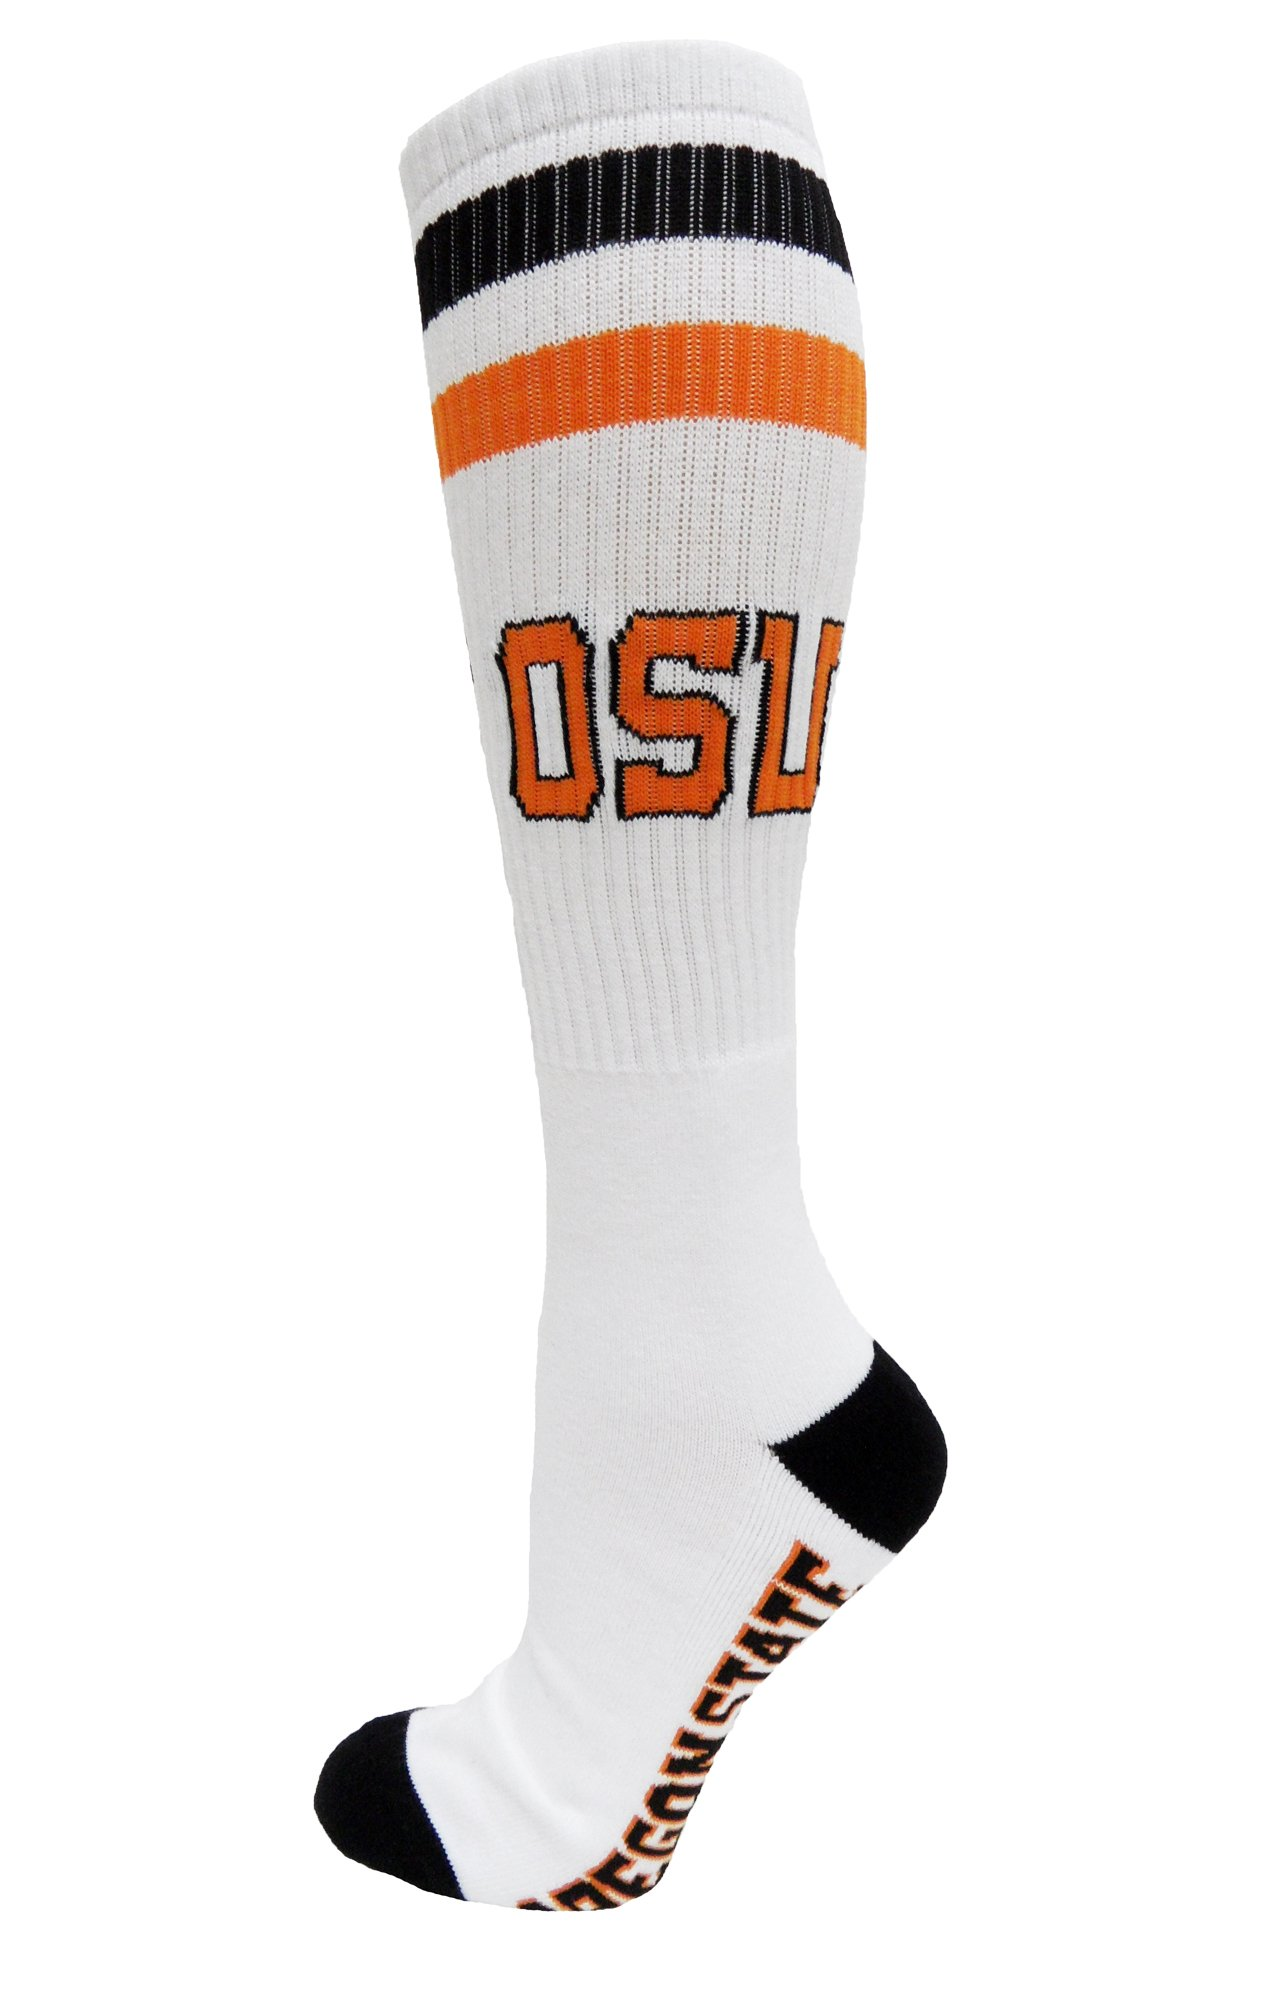 NCAA Oregon State Beavers Tube Socks, One Size, White by Donegal Bay